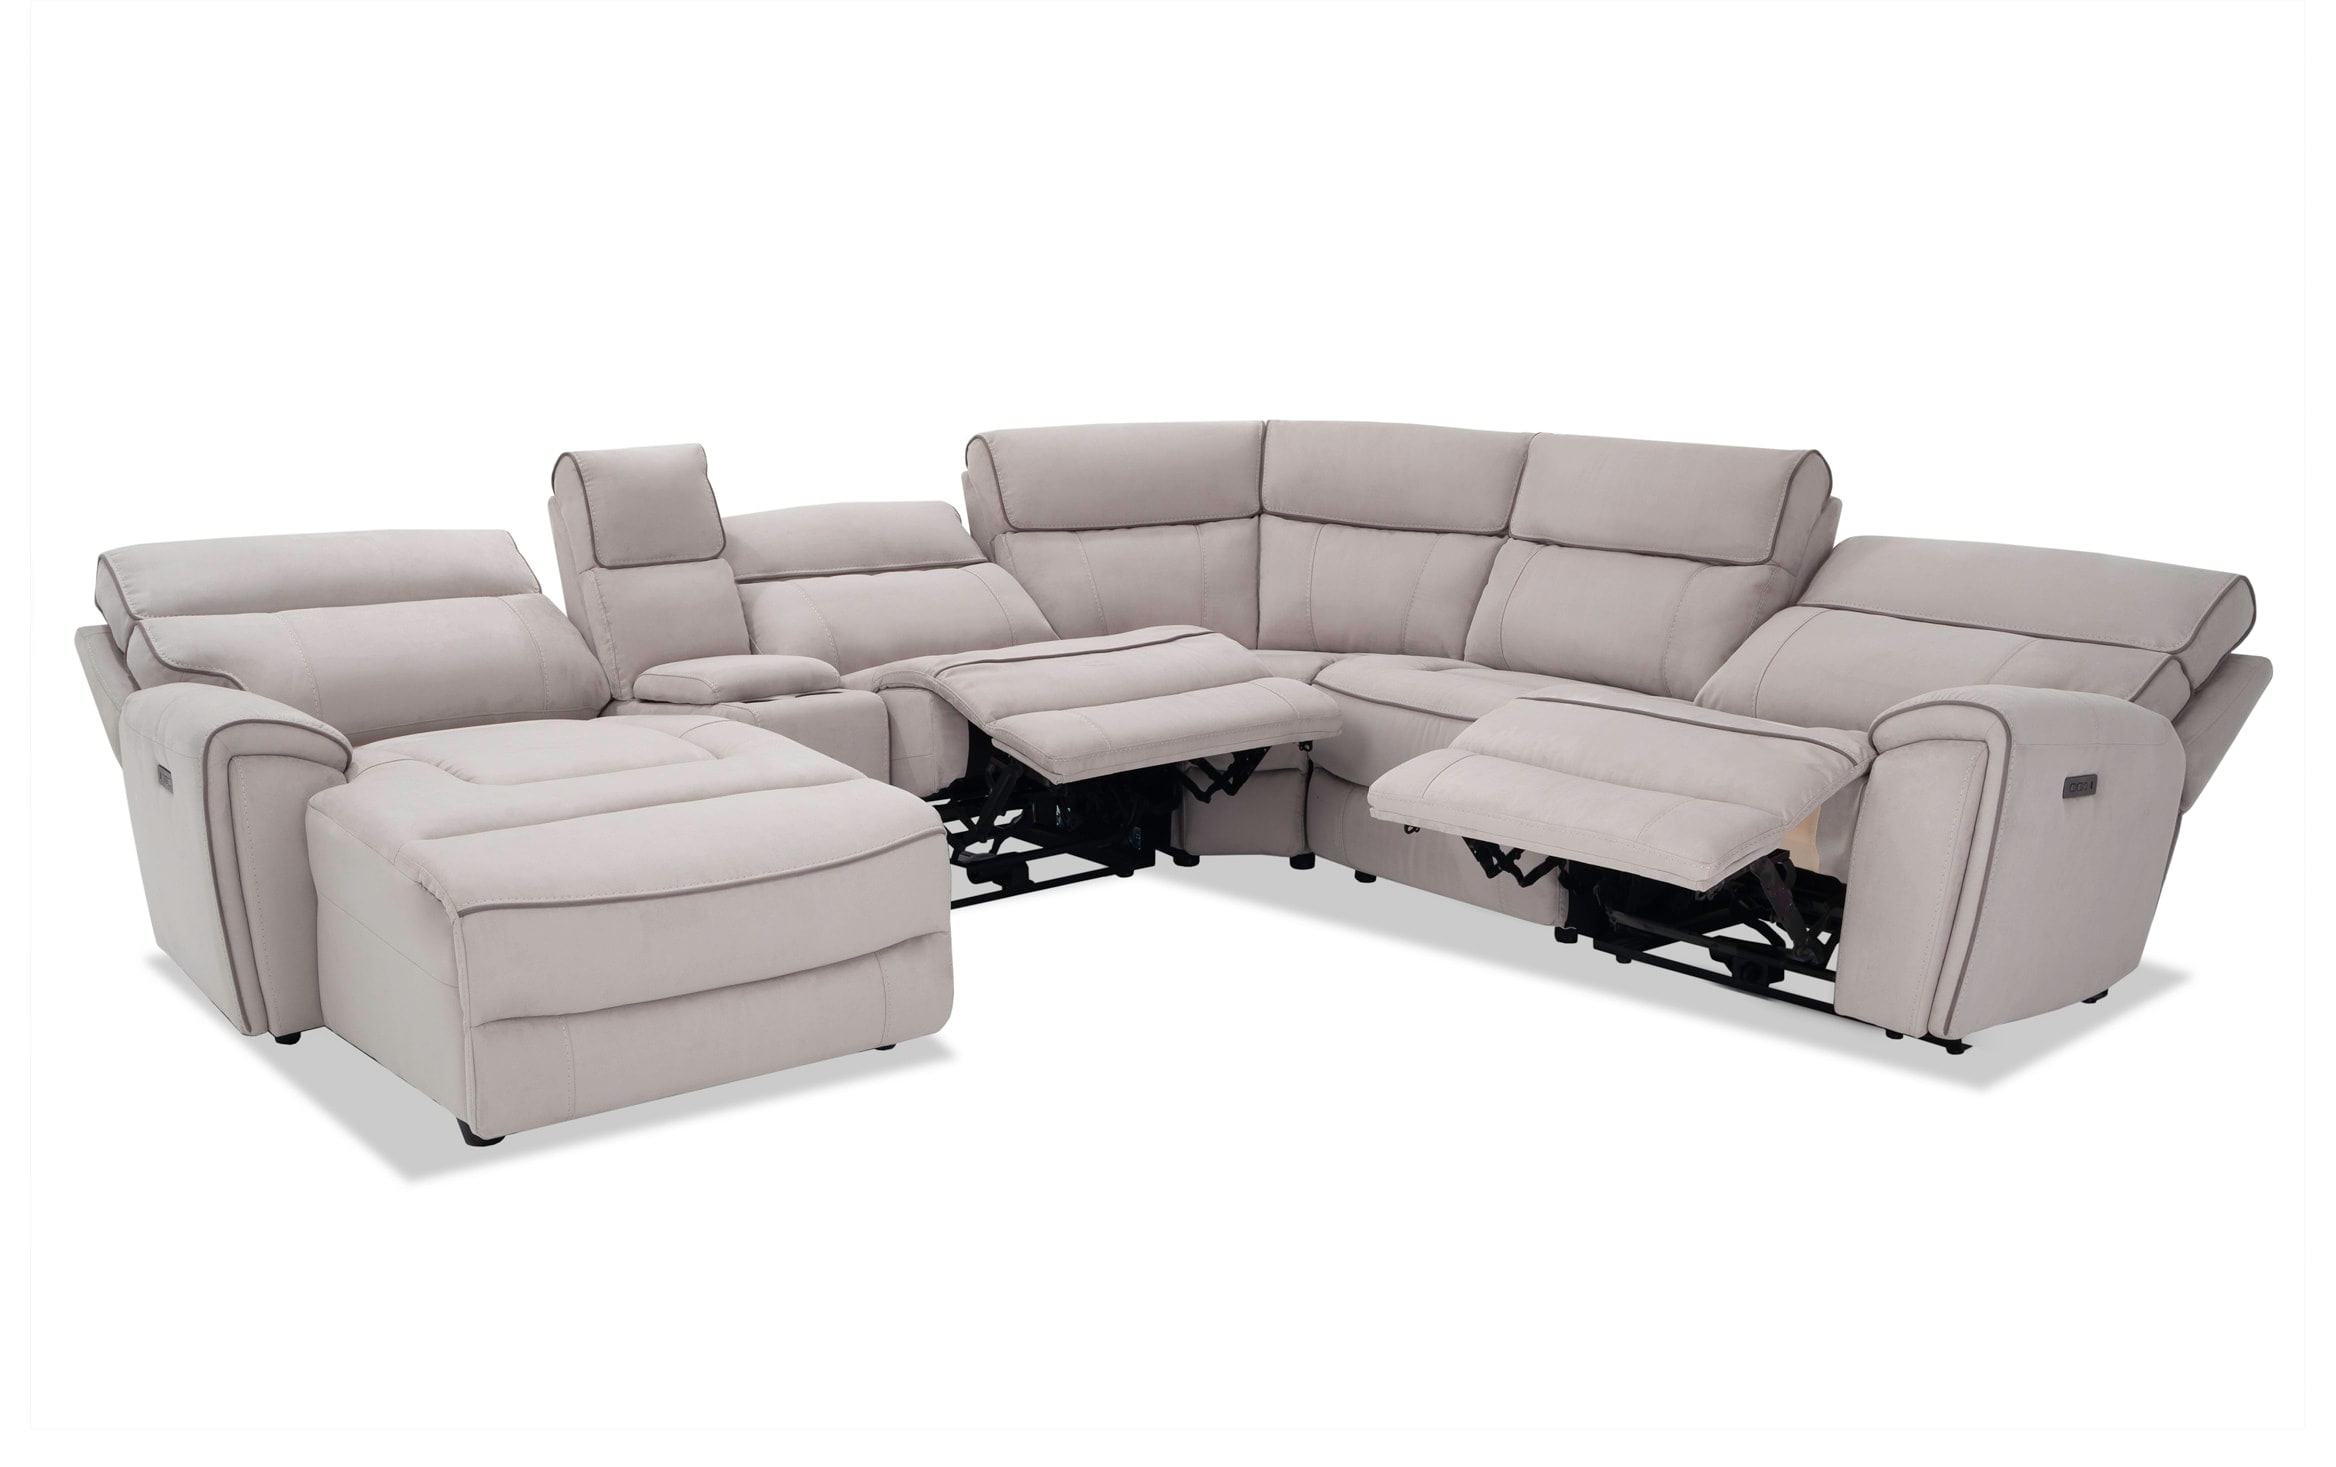 Contempo Power Reclining Sofas With Regard To Favorite Contempo 6 Piece Power Reclining Left Arm Facing Sectional (View 5 of 15)